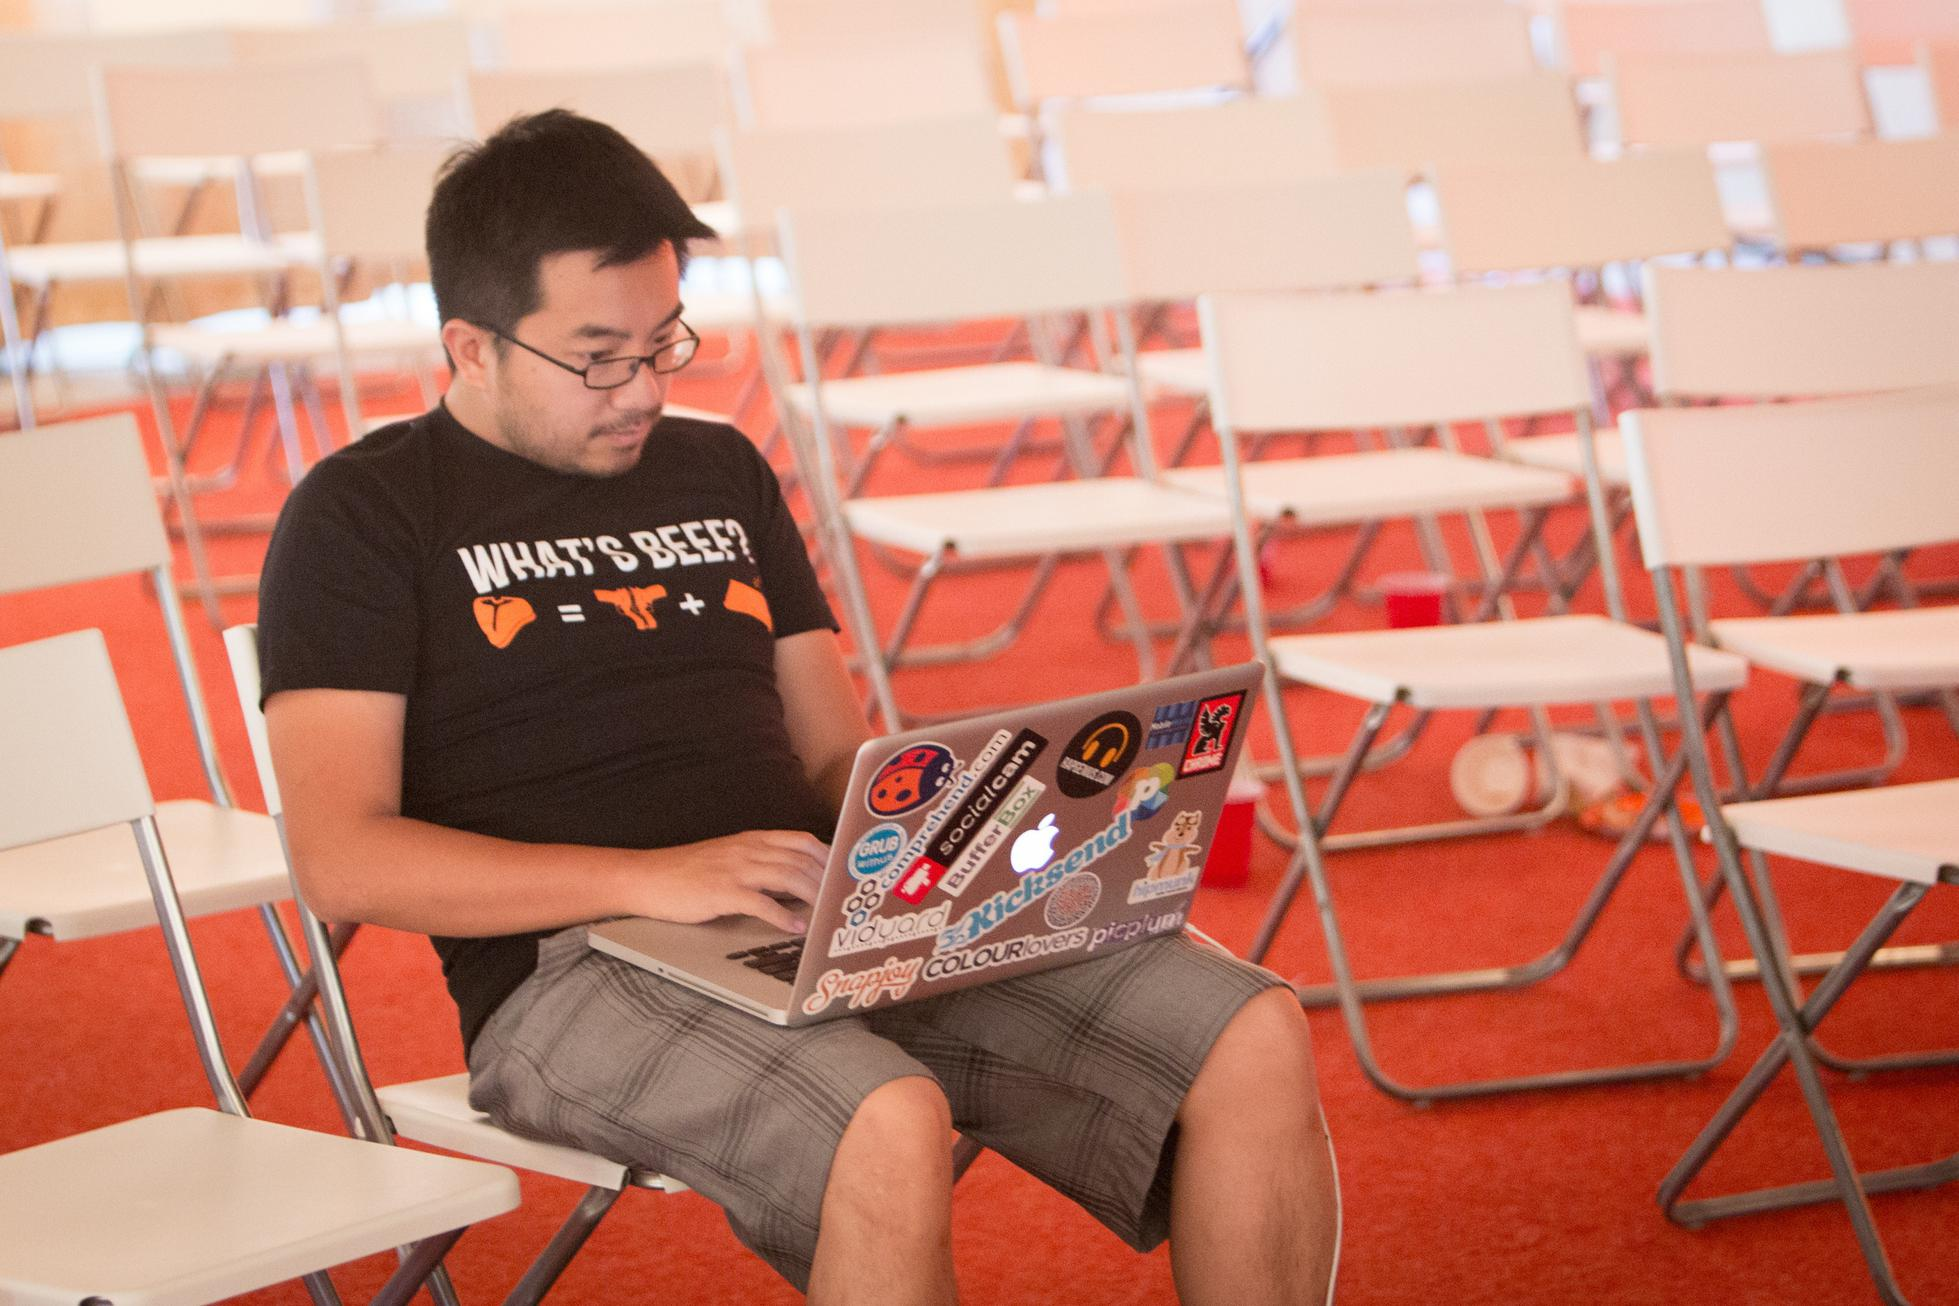 Garry Tan in the run up to Y Combinator's demo day in 2012, as taken by Brian Armstrong.